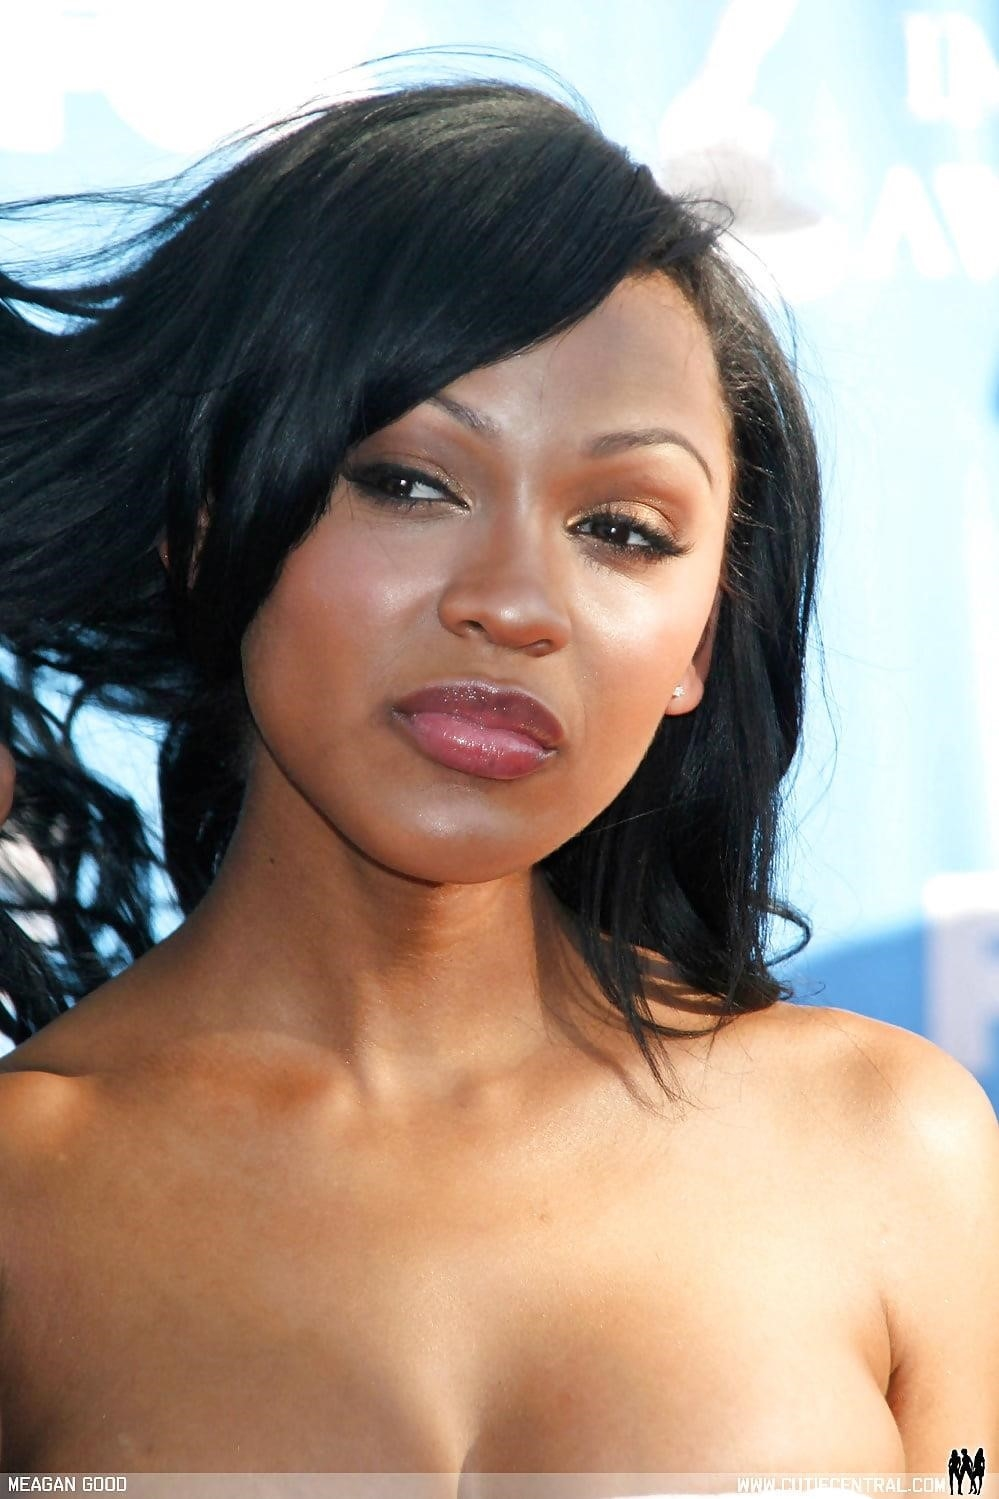 Meagan good nude pictures-7126